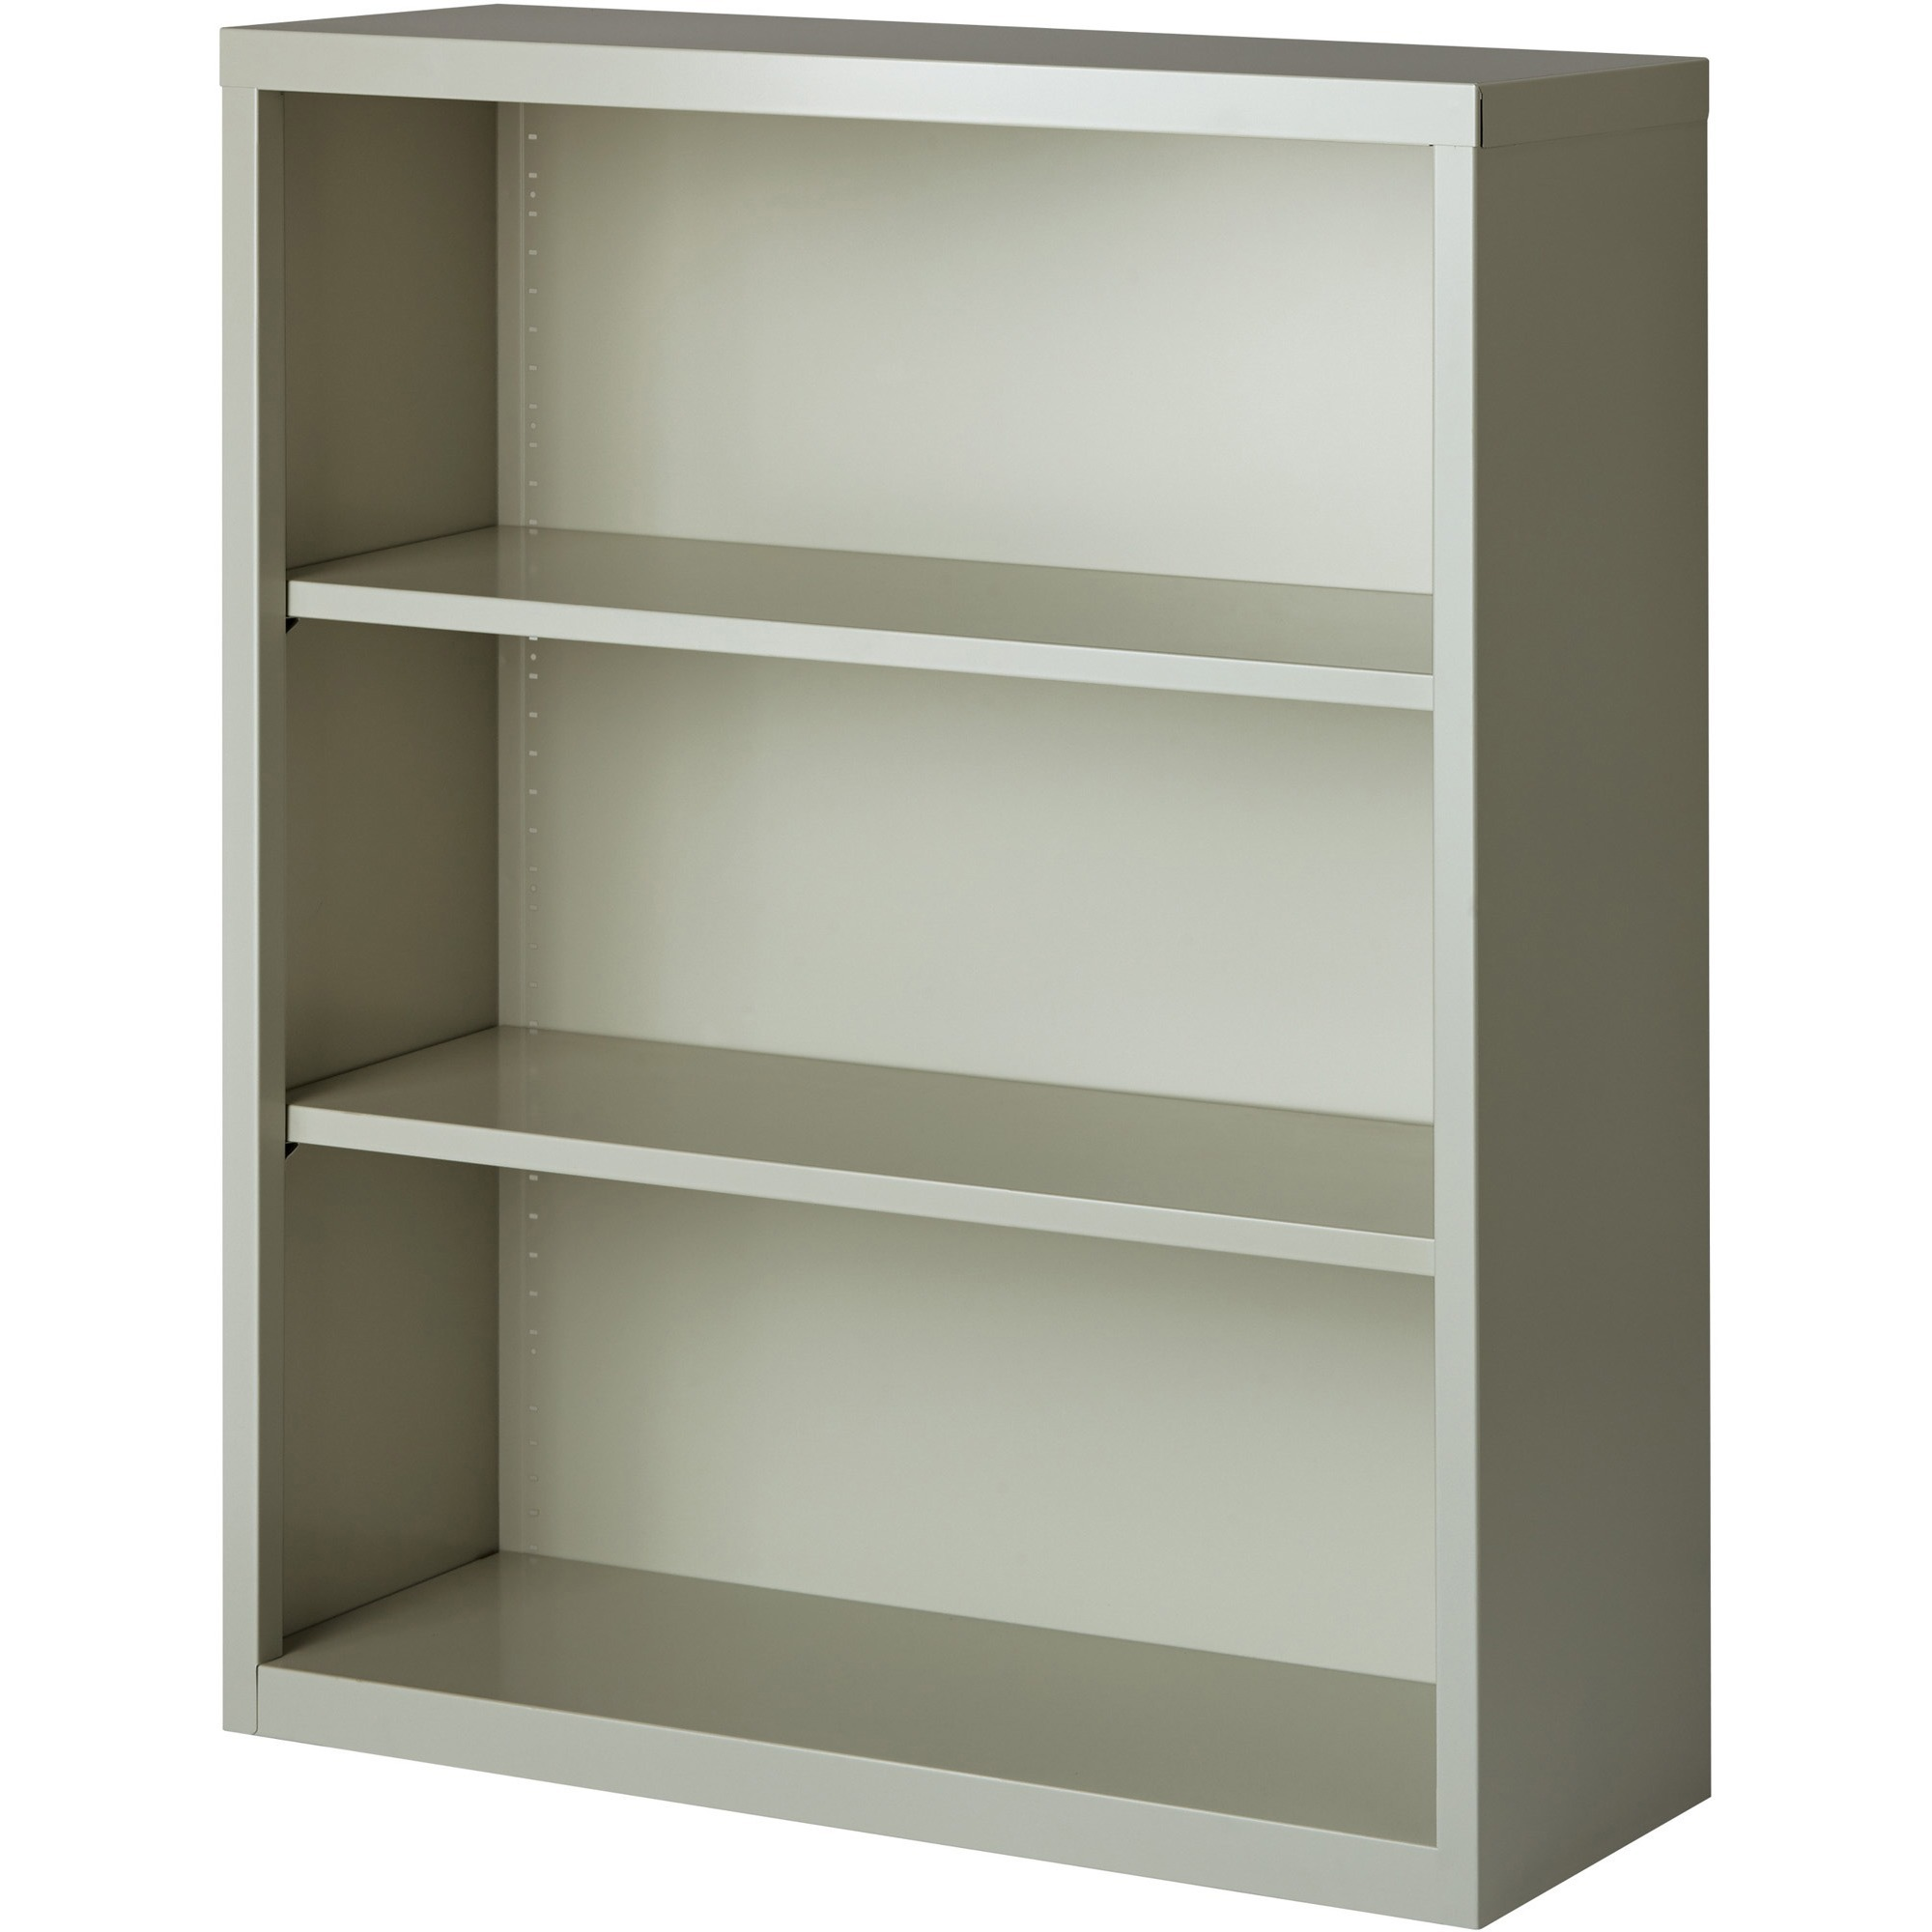 storeroom bookcases modular bassett shelving library asp triple furniture open bookcase storage living